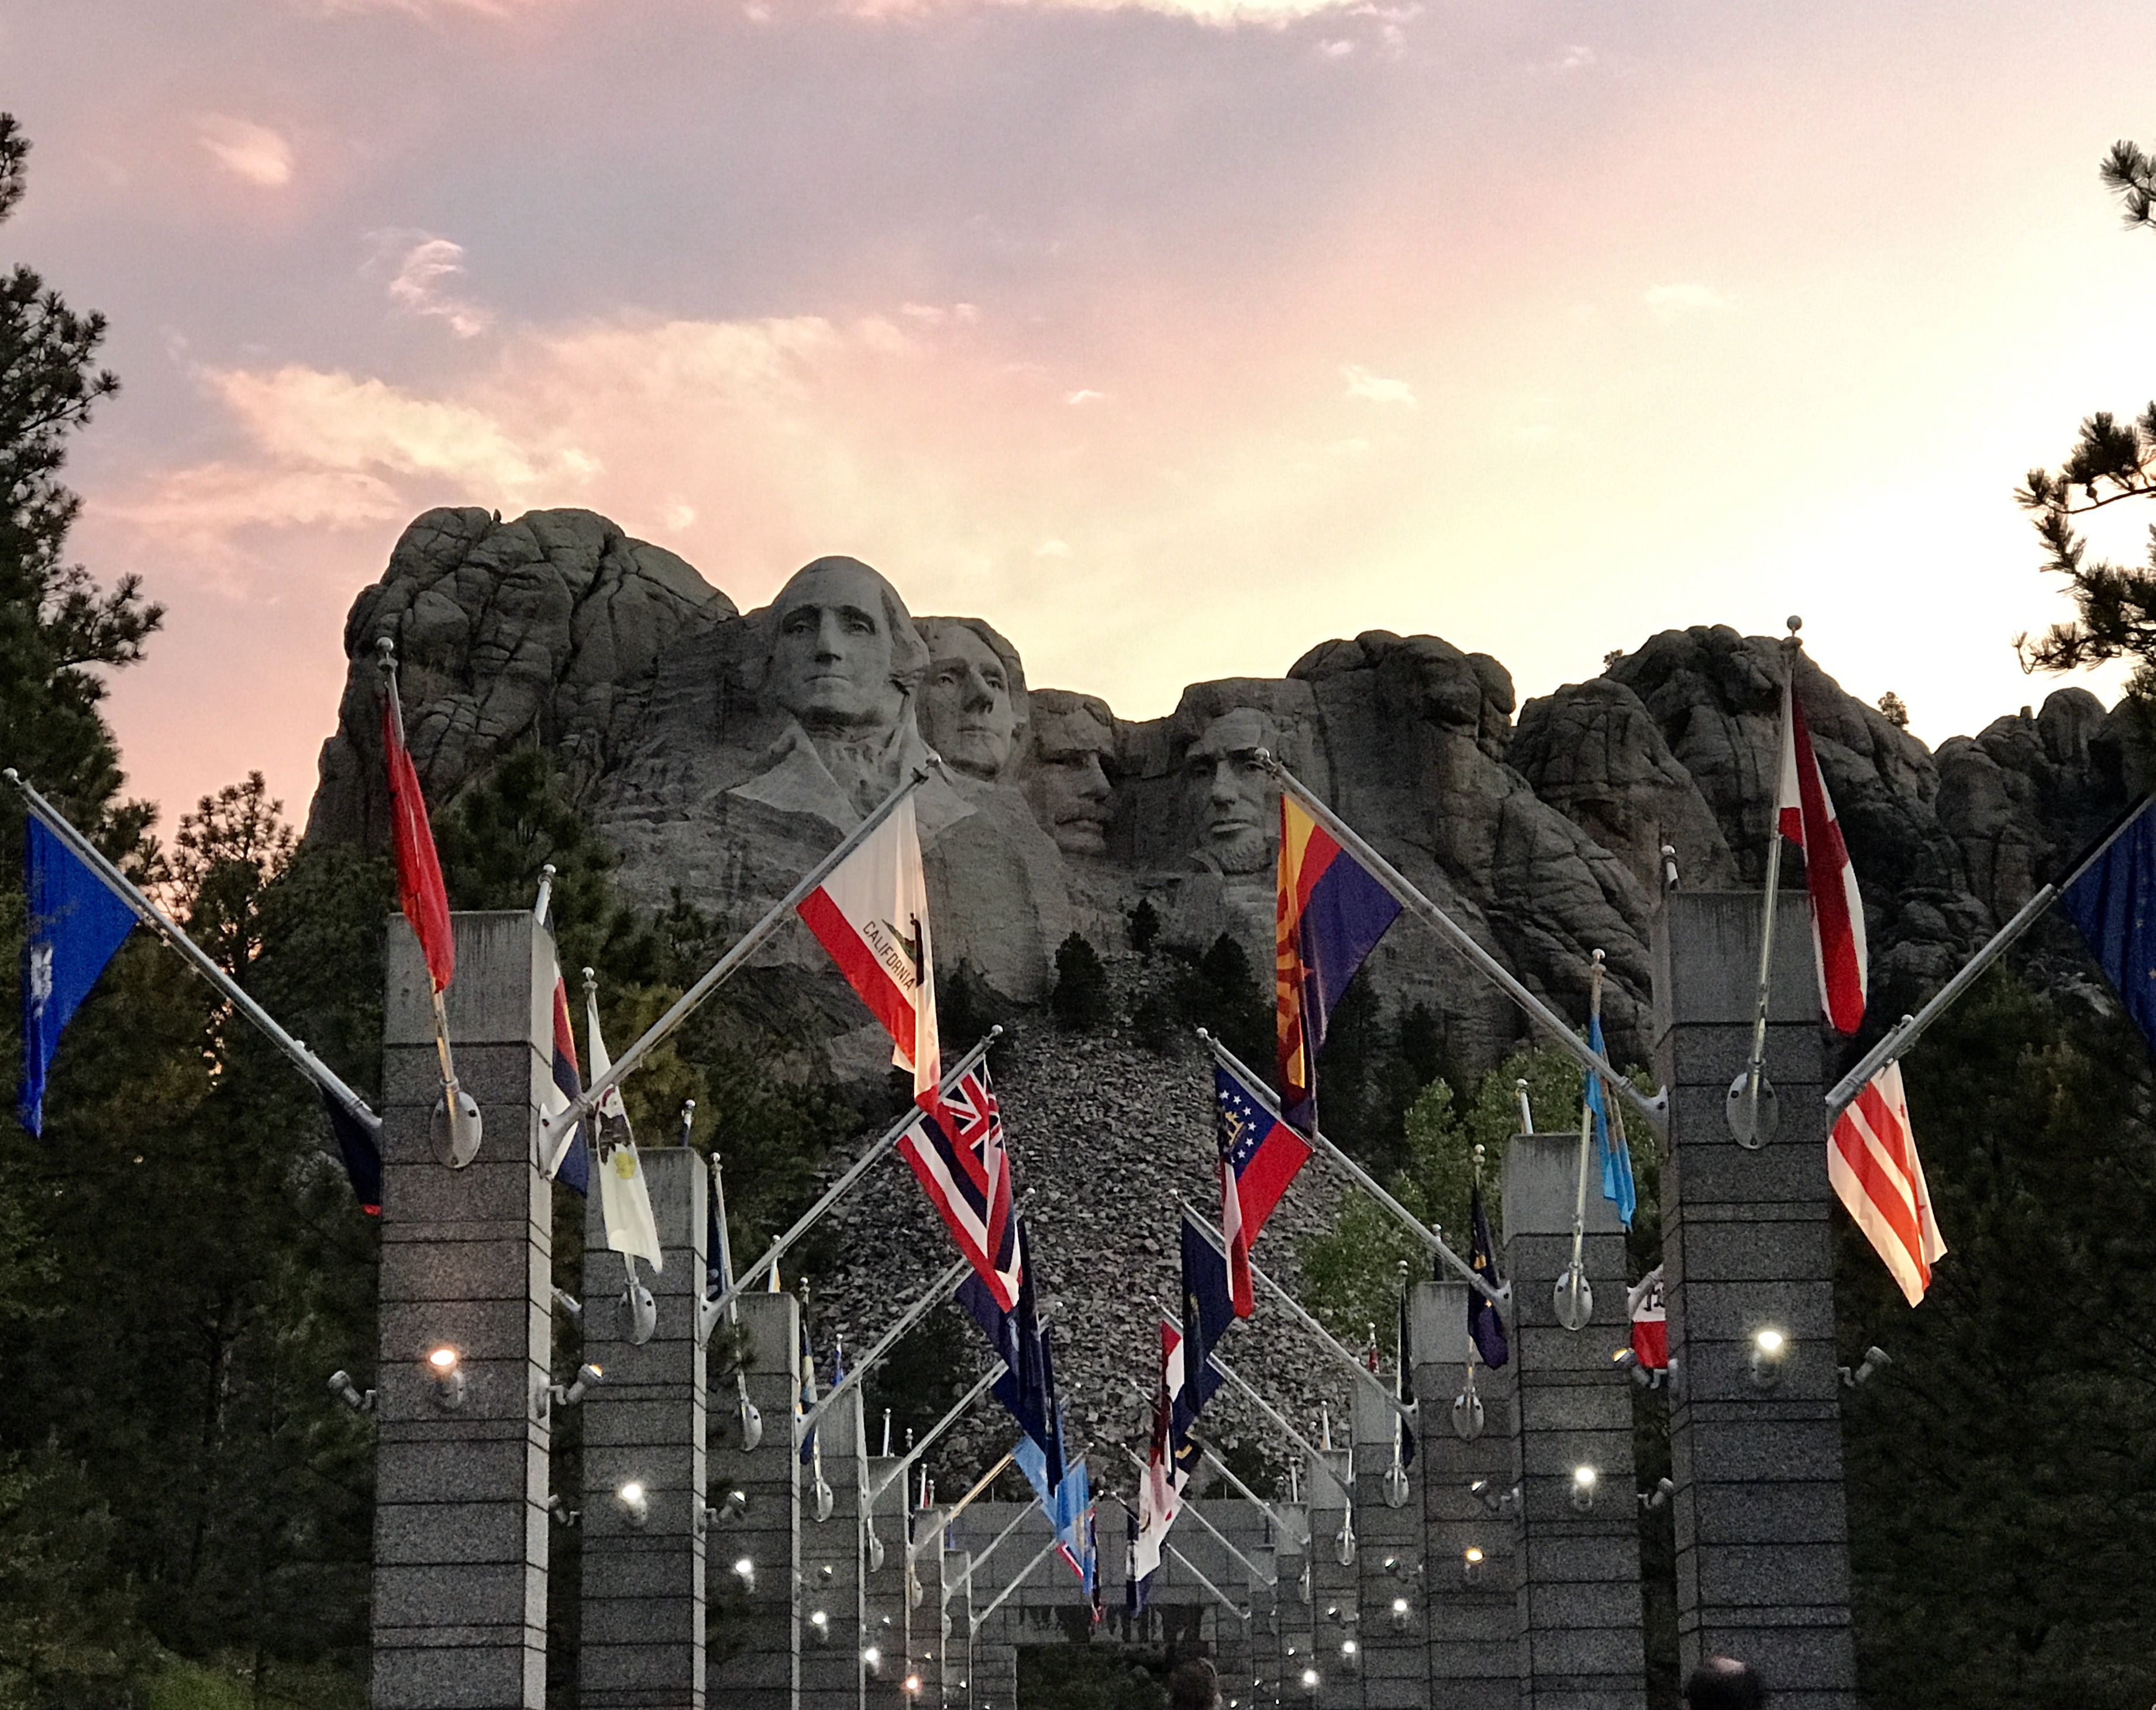 Just before Lighting Ceremony at Mount Rushmore National Park  sc 1 st  Pinterest & Just before Lighting Ceremony at Mount Rushmore National Park ... azcodes.com